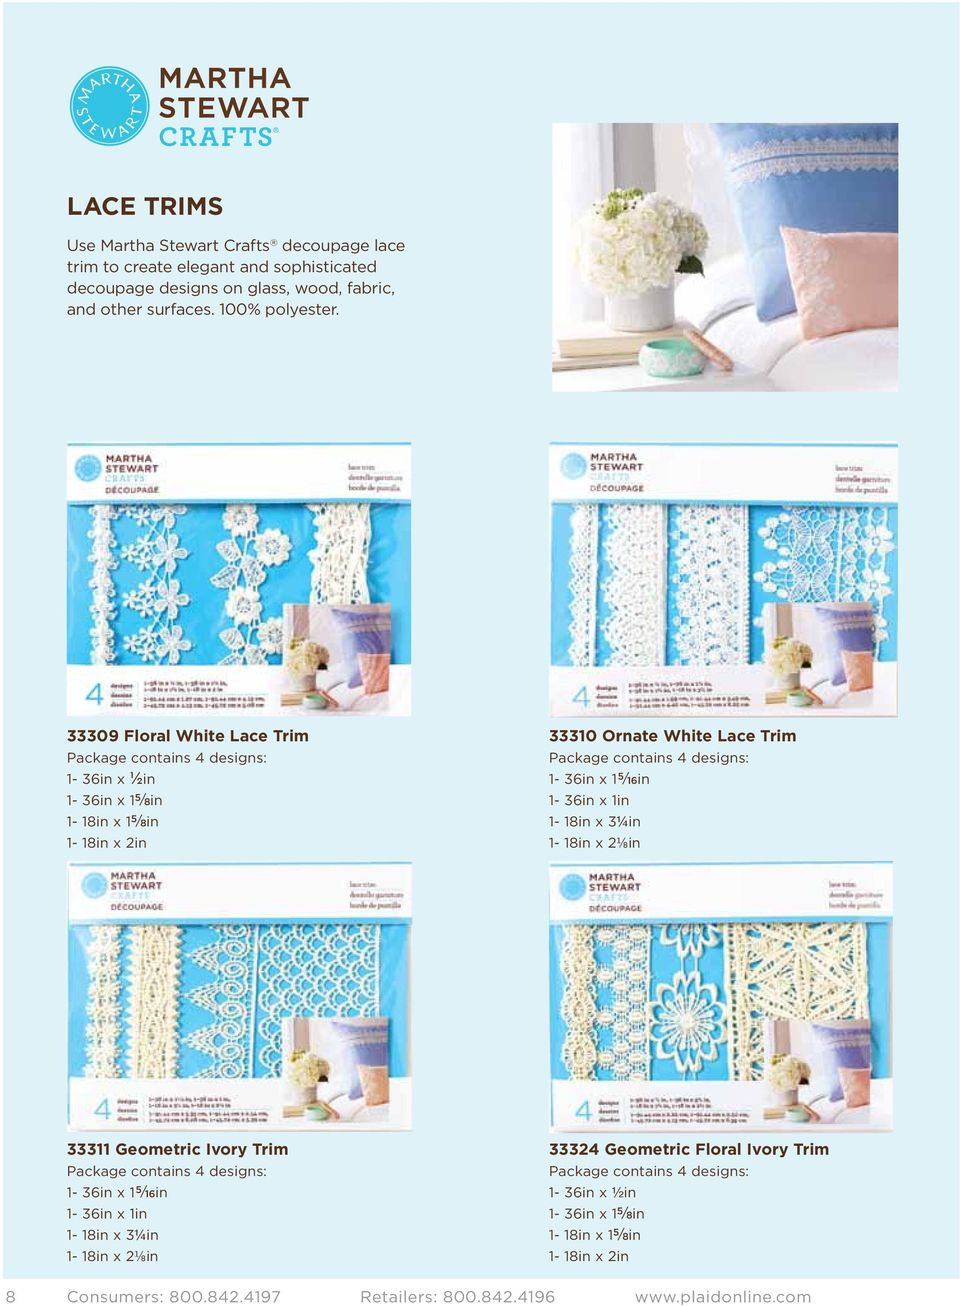 1-36in x 1 5 / 16in 1-36in x 1in 1-18in x 3¼in 1-18in x 2⅛in 33311 Geometric Ivory Trim Package contains 4 designs: 1-36in x 1 5 / 16in 1-36in x 1in 1-18in x 3¼in 1-18in x 2⅛in